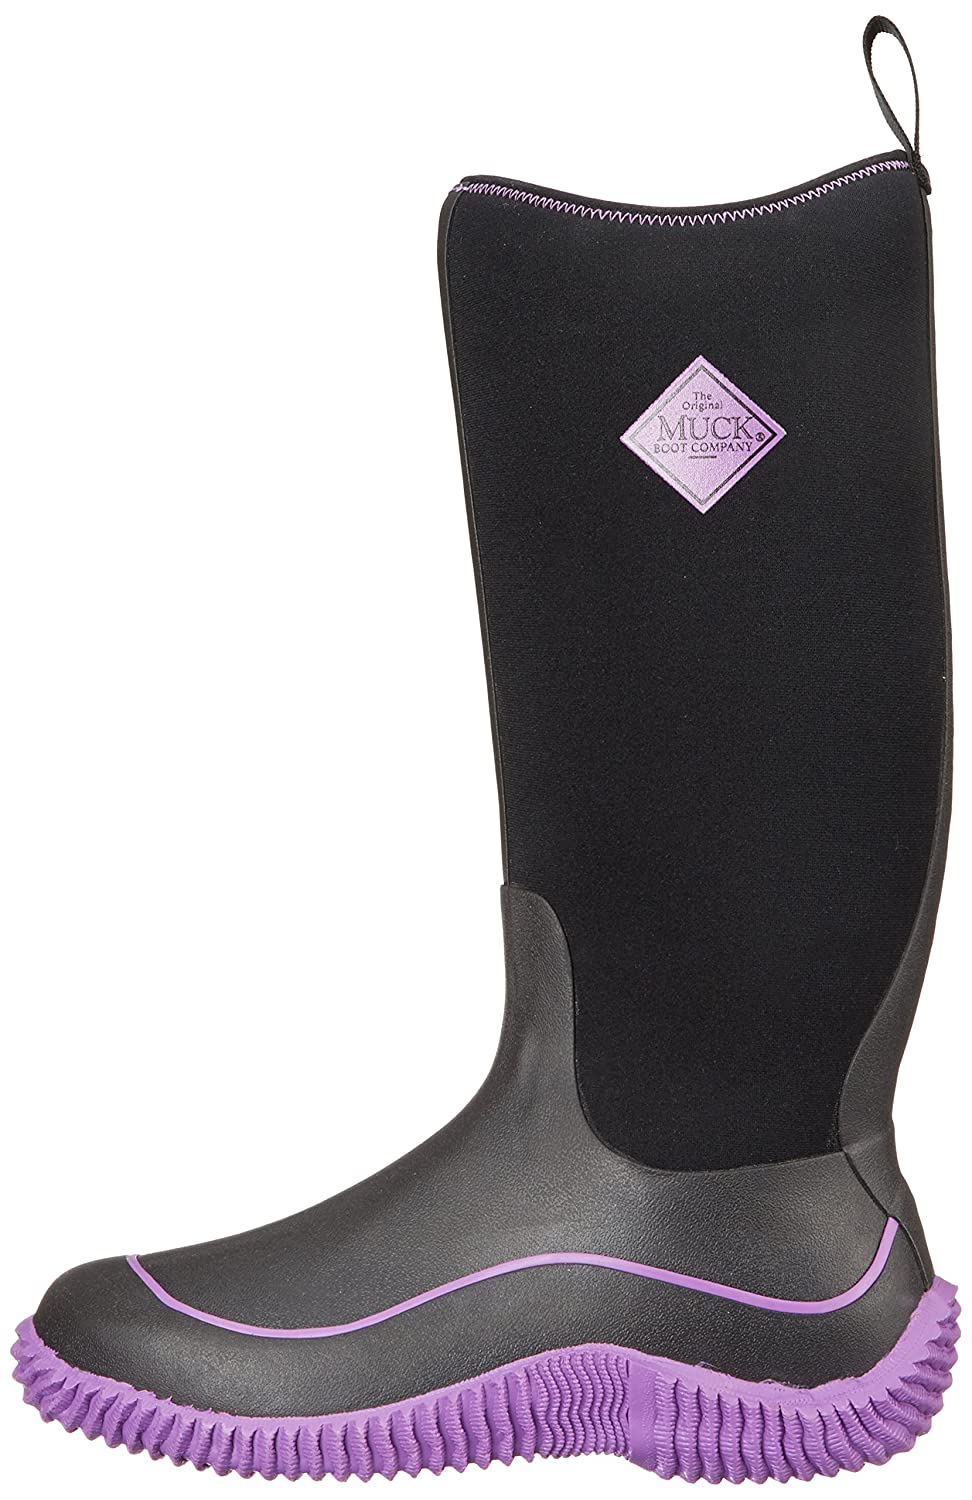 MuckBoots Women's Hale Plaid B(M) Boot B00IHW9V5I 11 B(M) Plaid US|Black/Purple 1c77d2